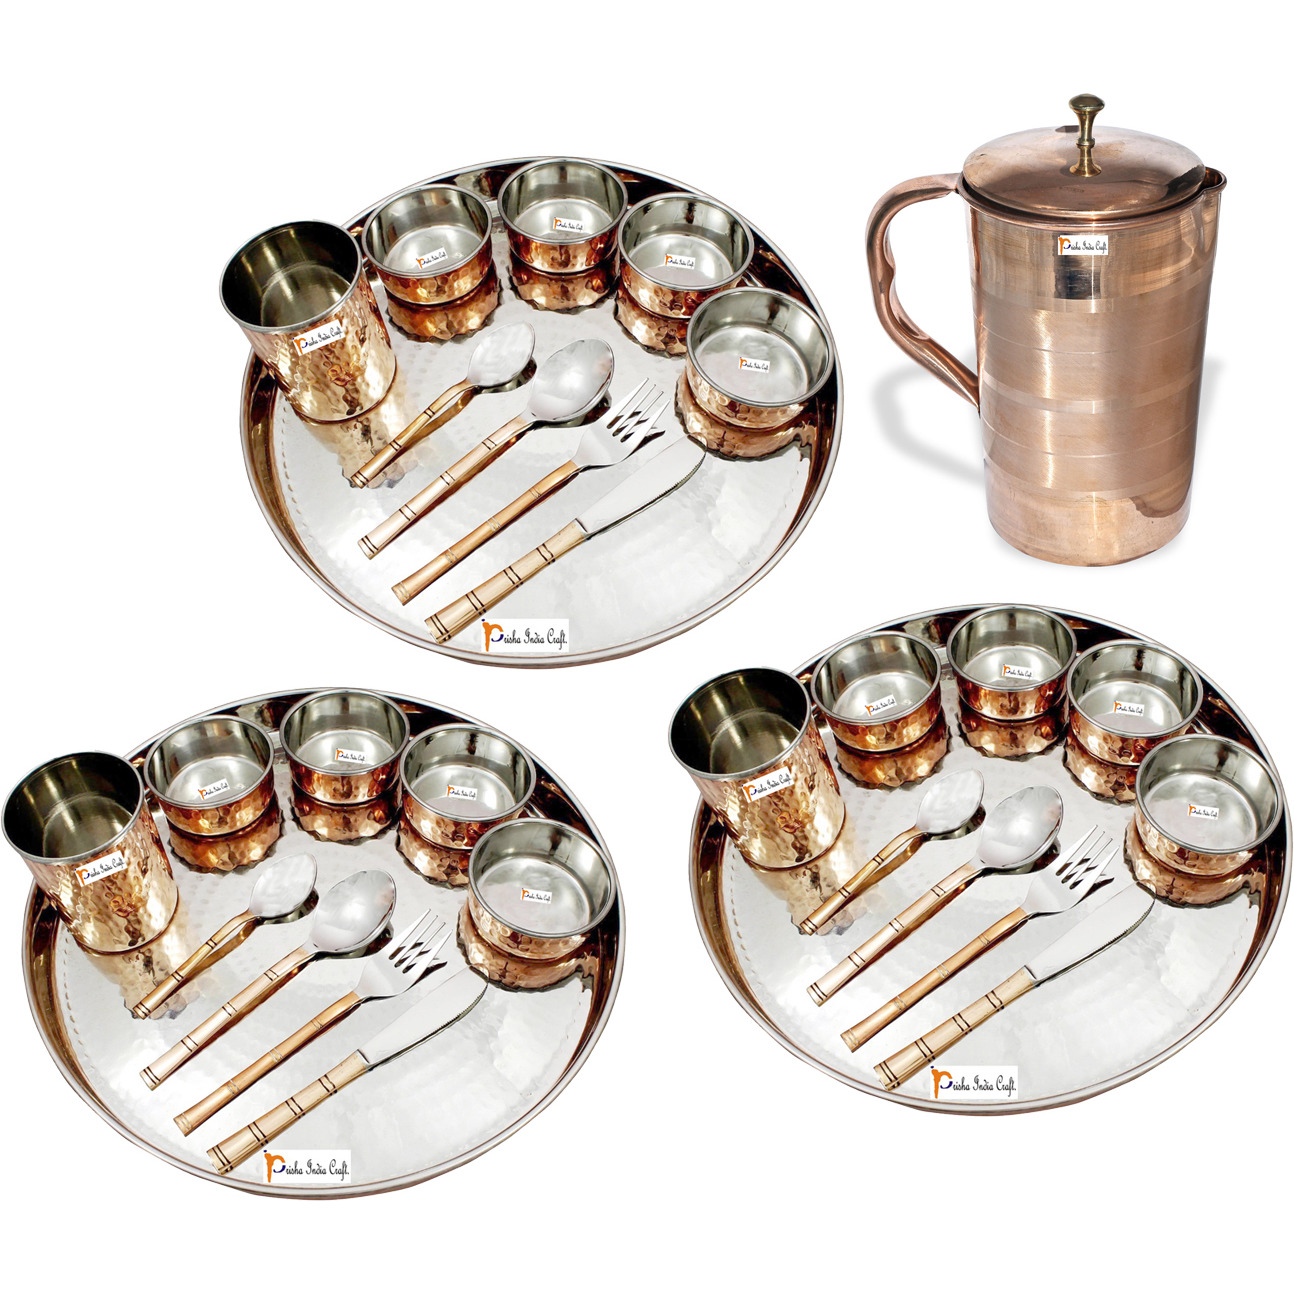 Prisha India Craft B. Set of 3 Dinnerware Traditional Stainless Steel Copper Dinner Set of Thali Plate, Bowls, Glass and Spoons, Dia 13  With 1 Luxury Style Pure Copper Pitcher Jug - Christmas Gift